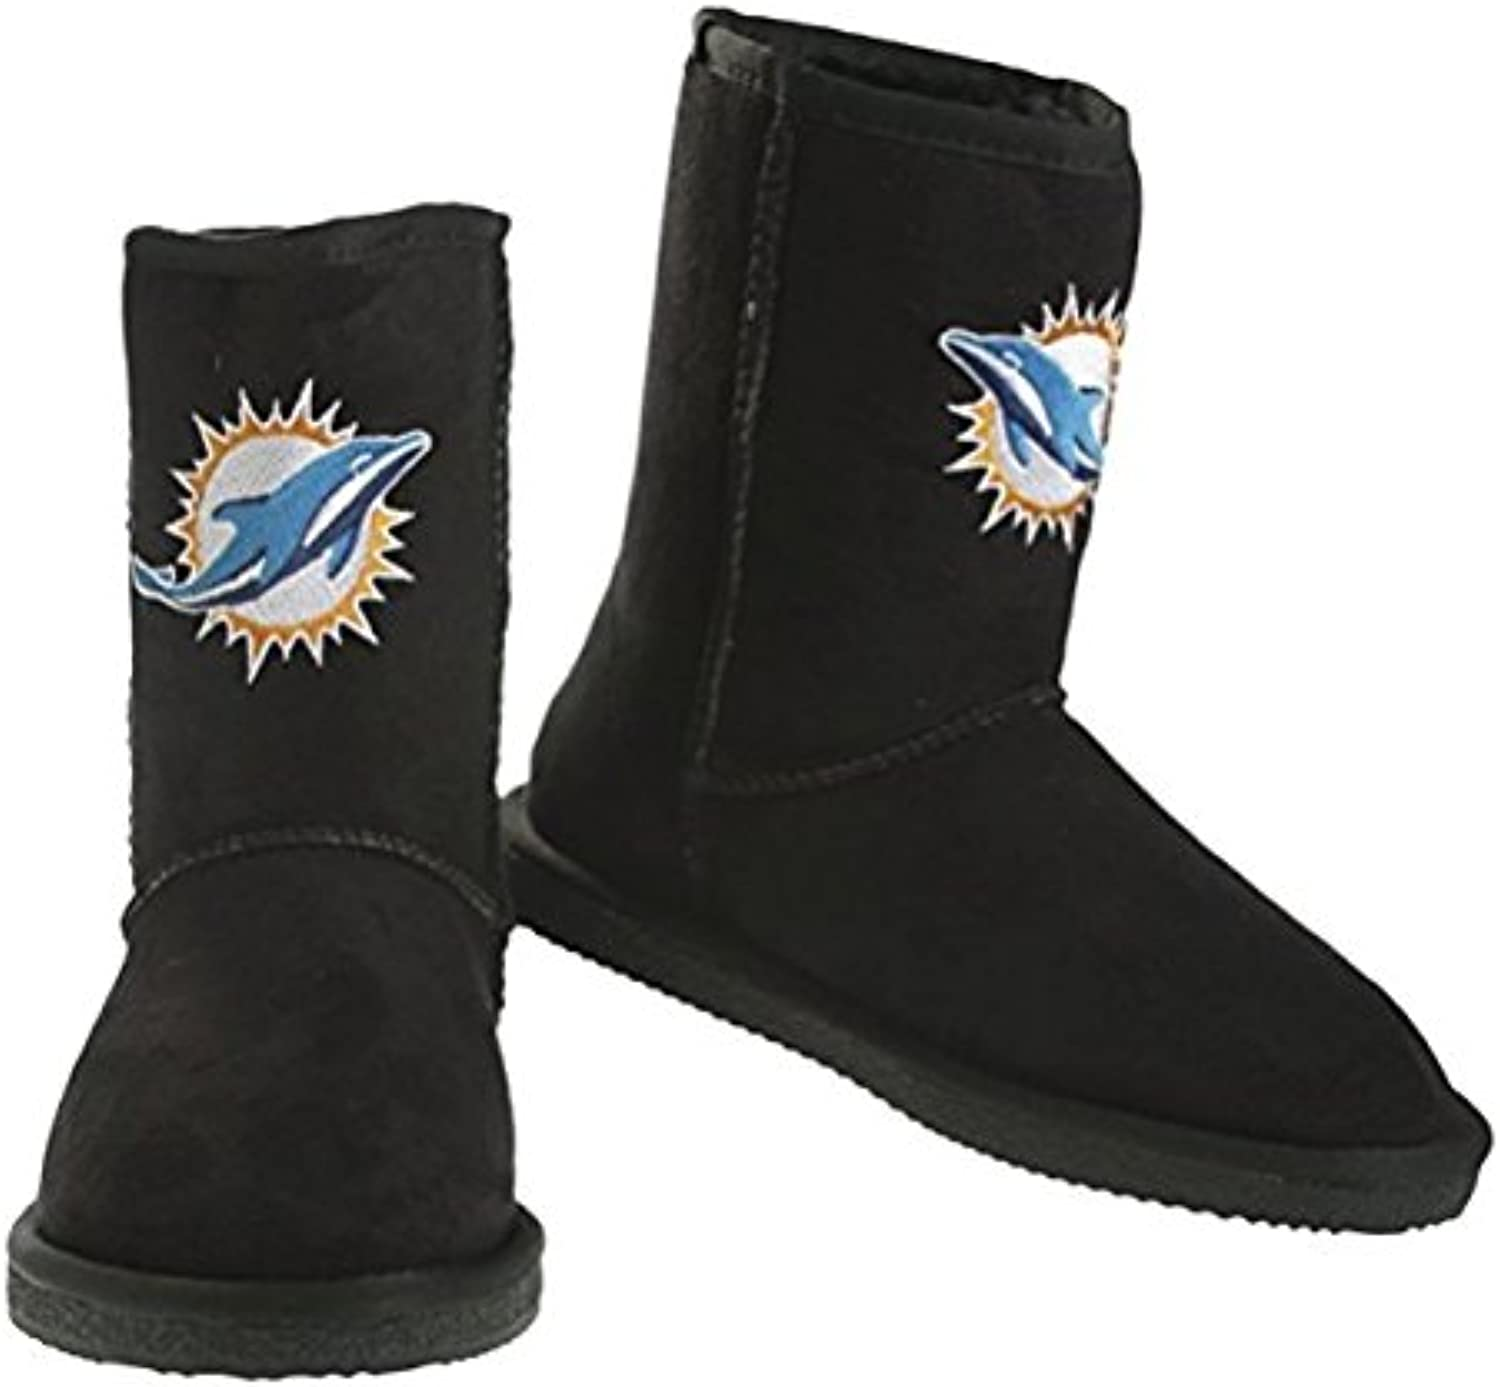 Miami Dolphins NFL The Ultimate Fan Women's Boot, Black